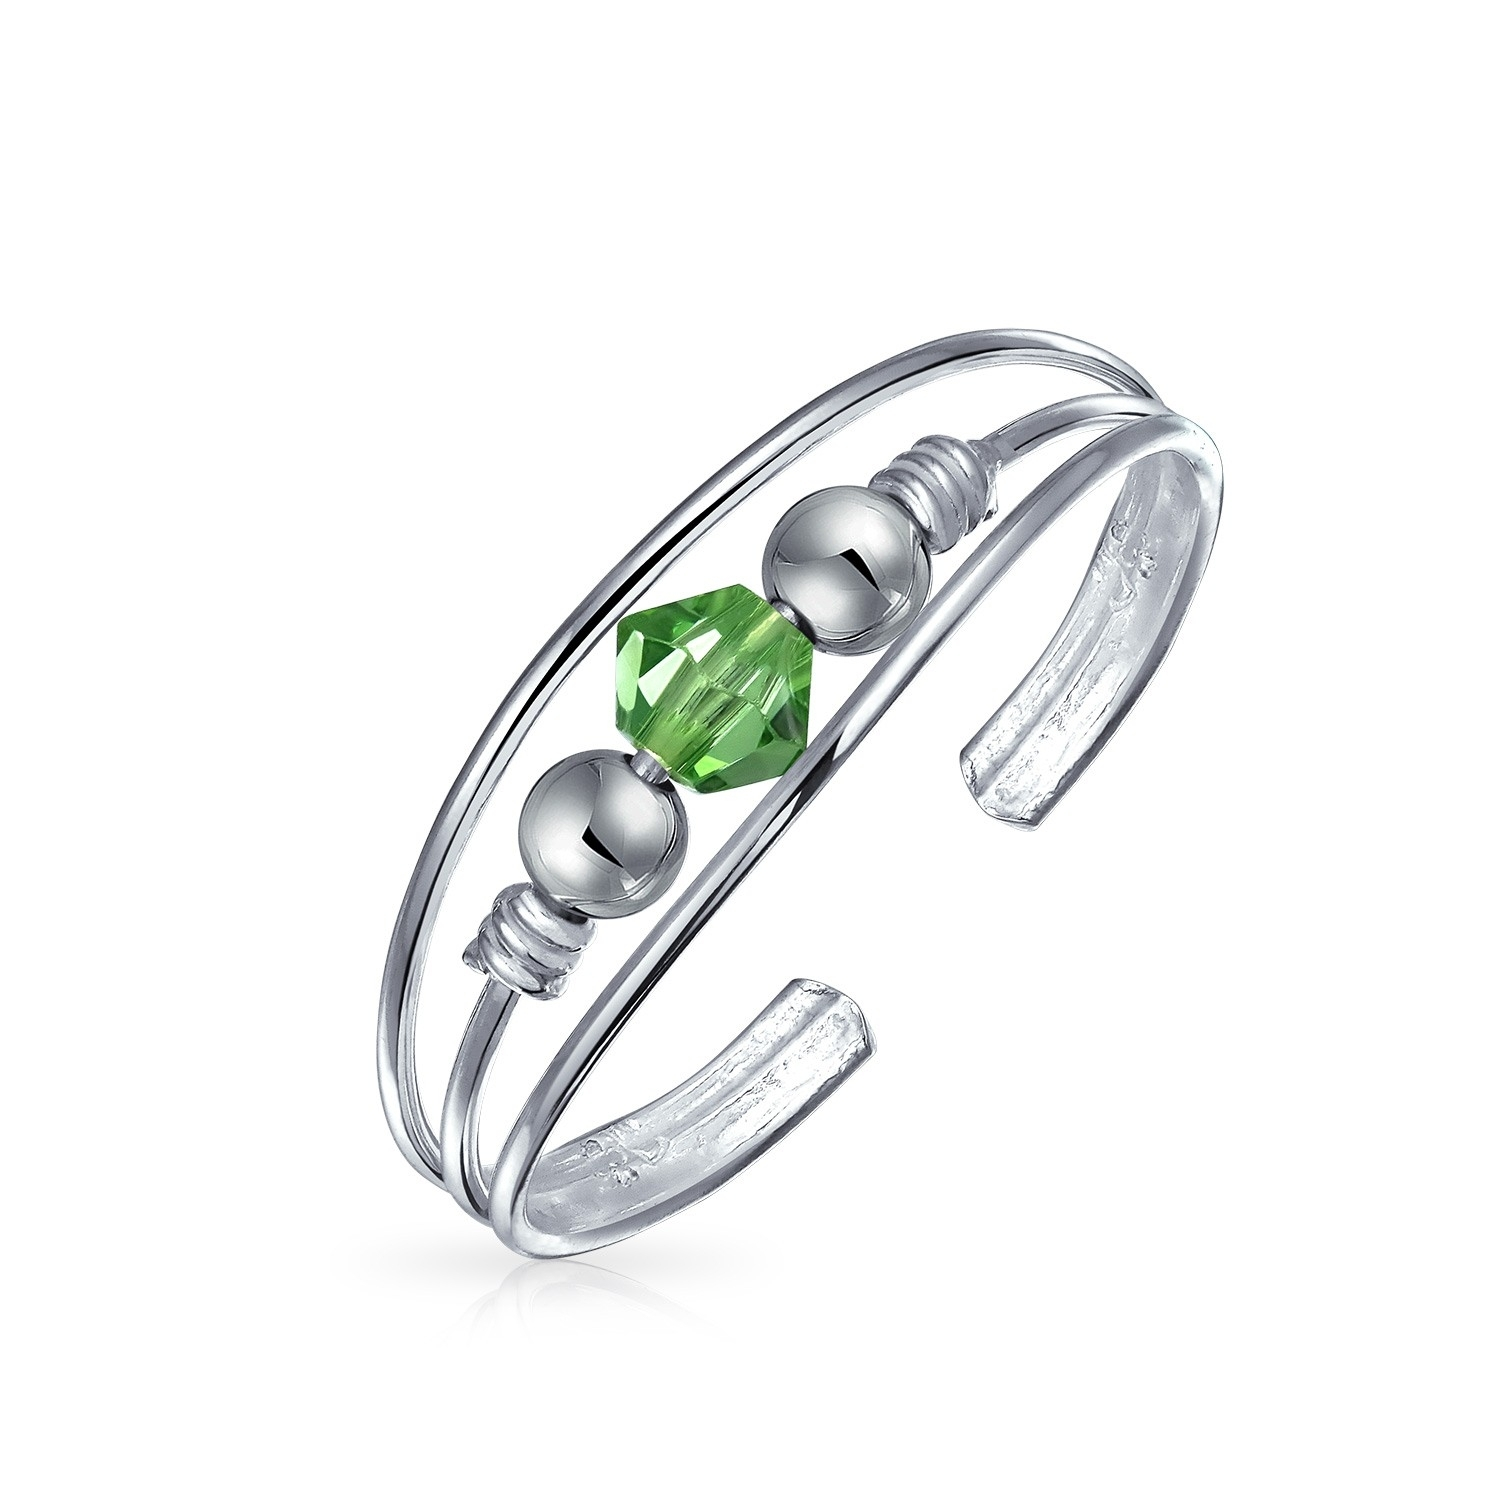 Sterling Silver Toe Ring Peridot Color Crystal August Birthstone With Current Birthstone Toe Rings (Gallery 2 of 15)